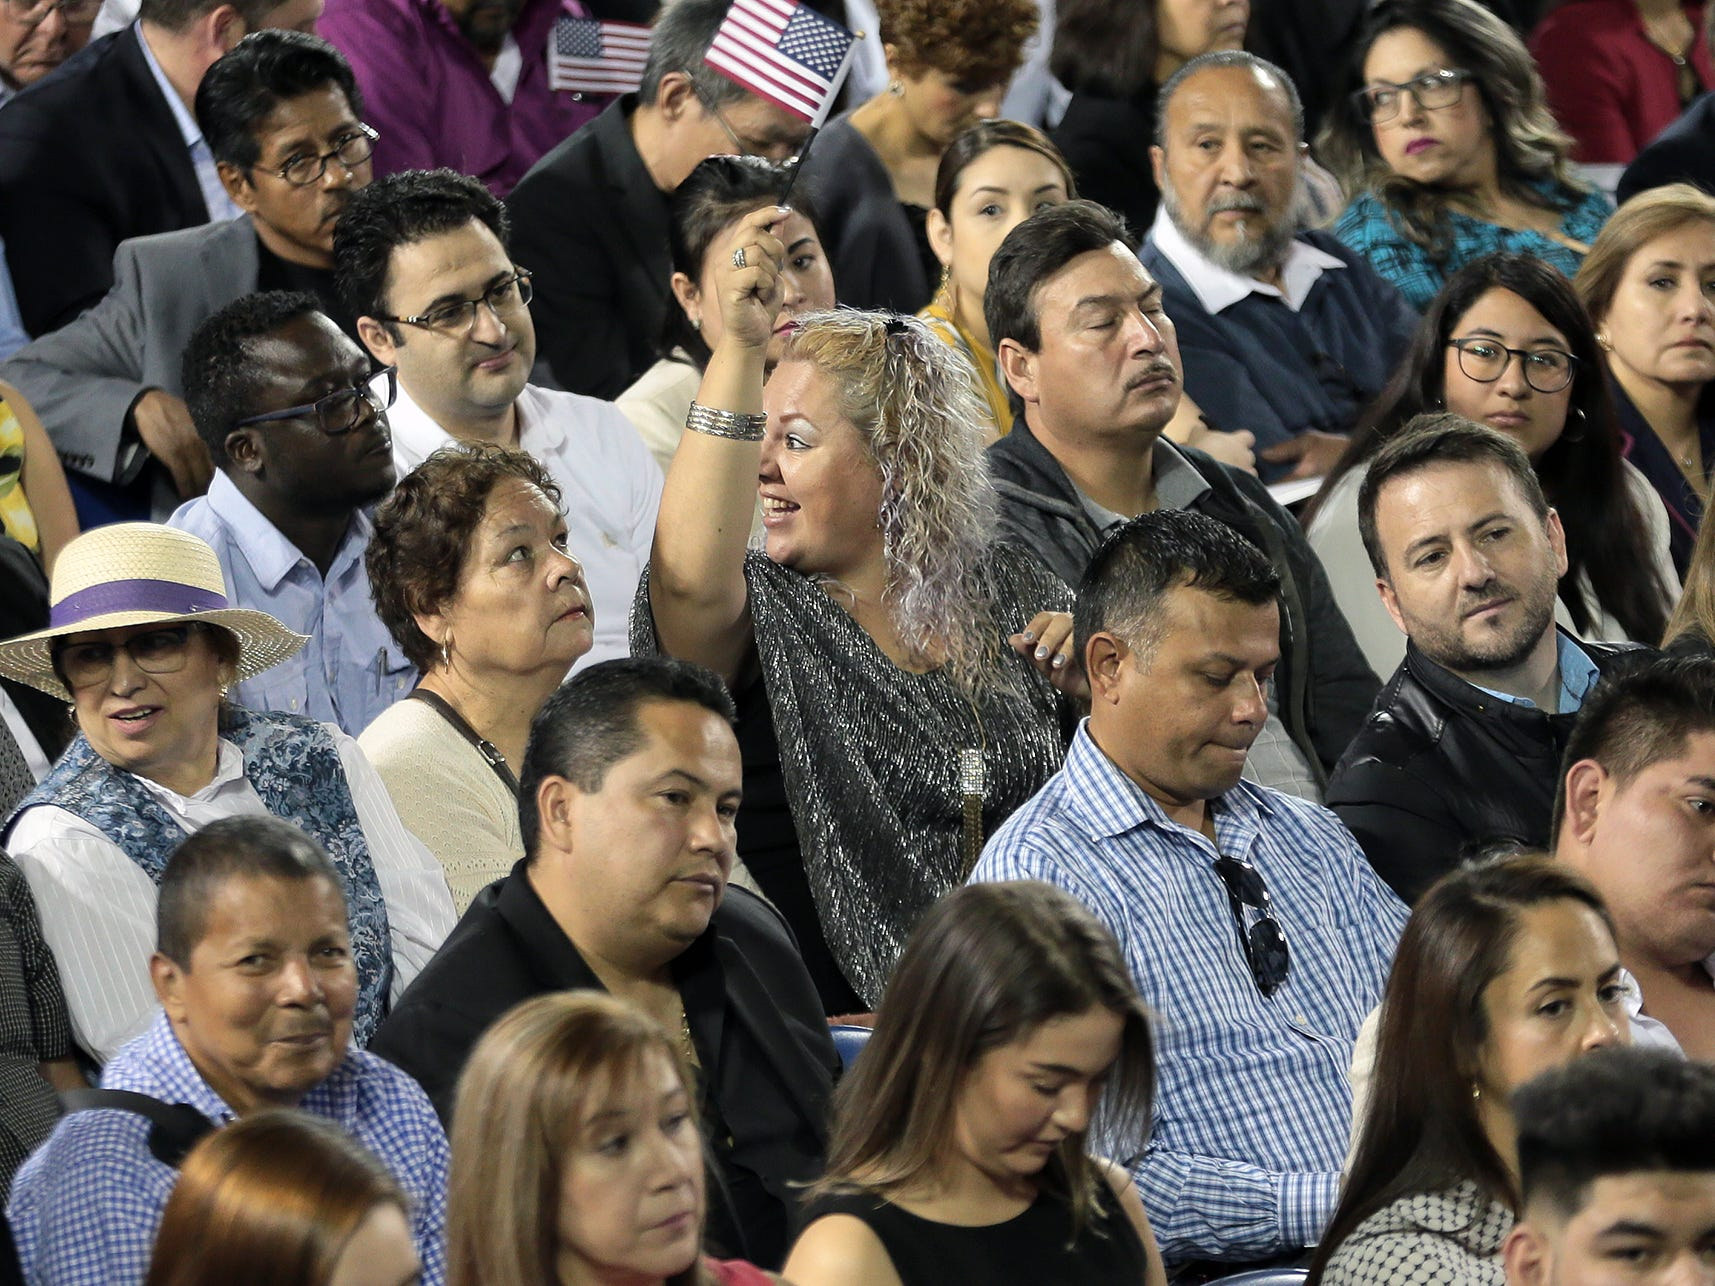 U.S. District Judge David C. Guaderrama administered the oath of citizenship to 740 new citizens Thursday at the El Paso County Coliseum.